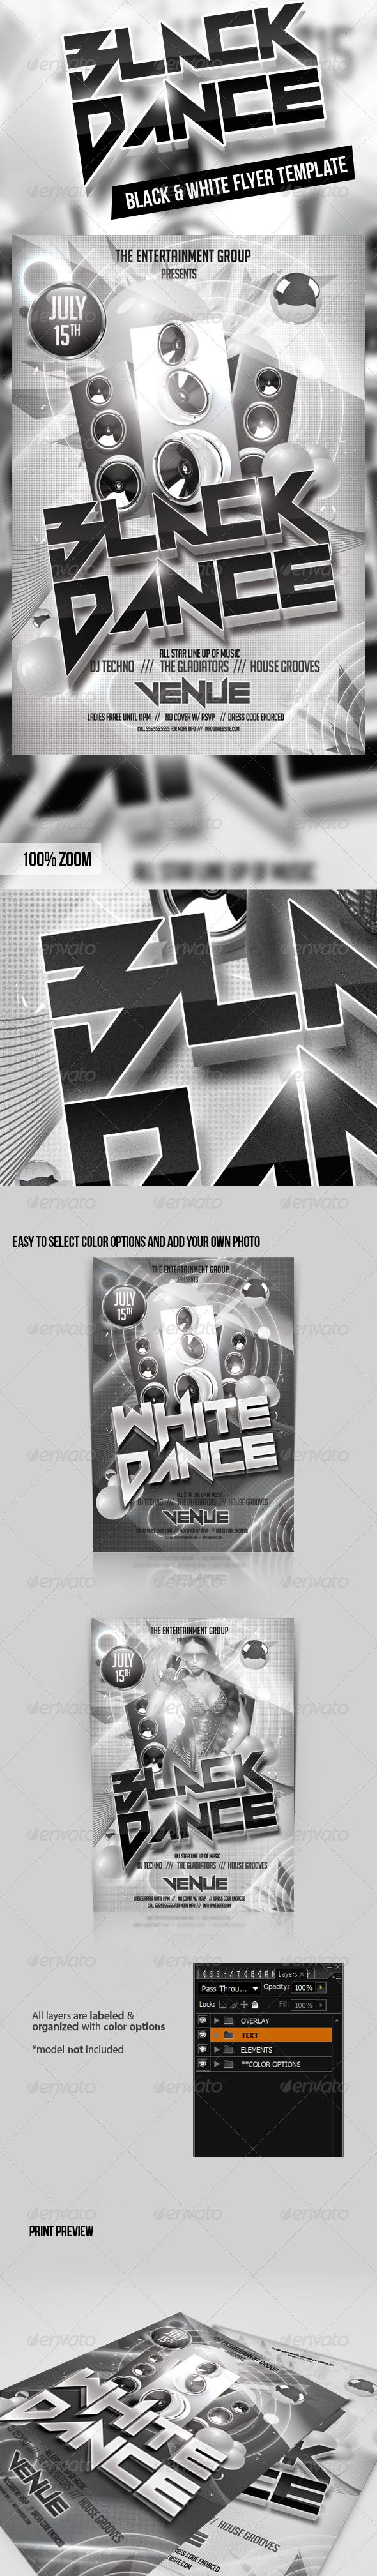 Black  White Party Flyer Template  Black White Parties Party